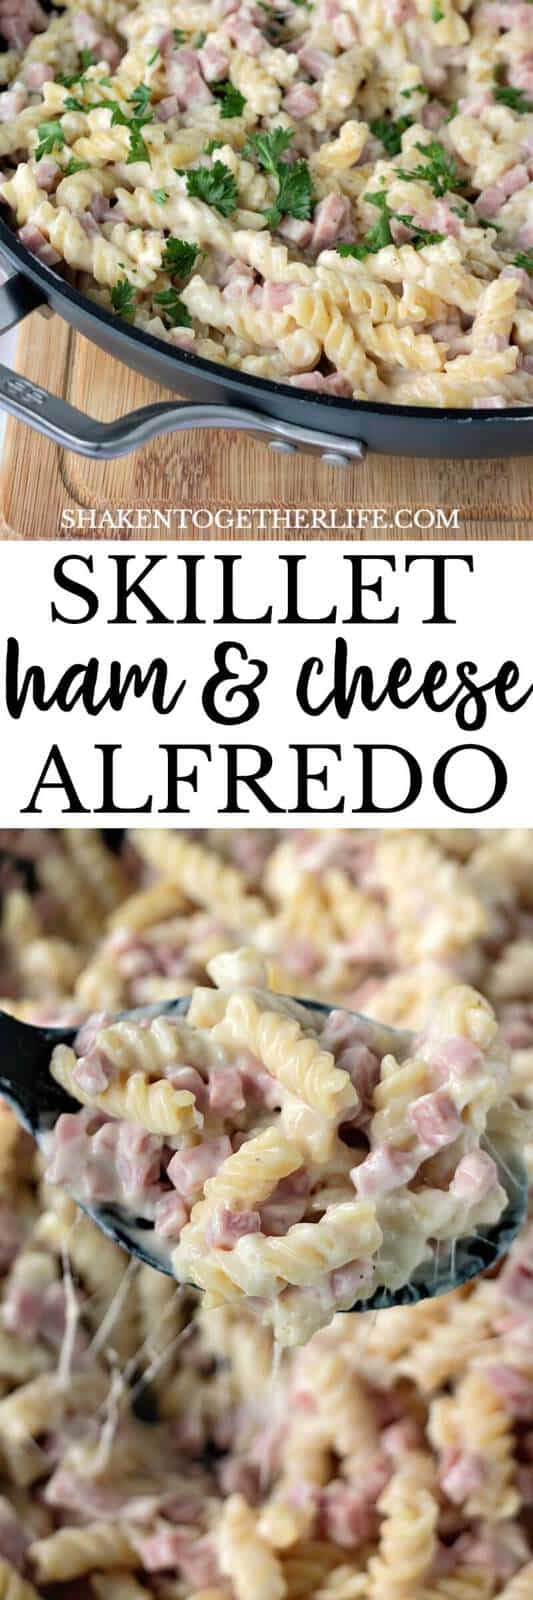 Creamy and cheesy, this Skillet Ham & Cheese Alfredo is the ultimate easy dinner recipe!